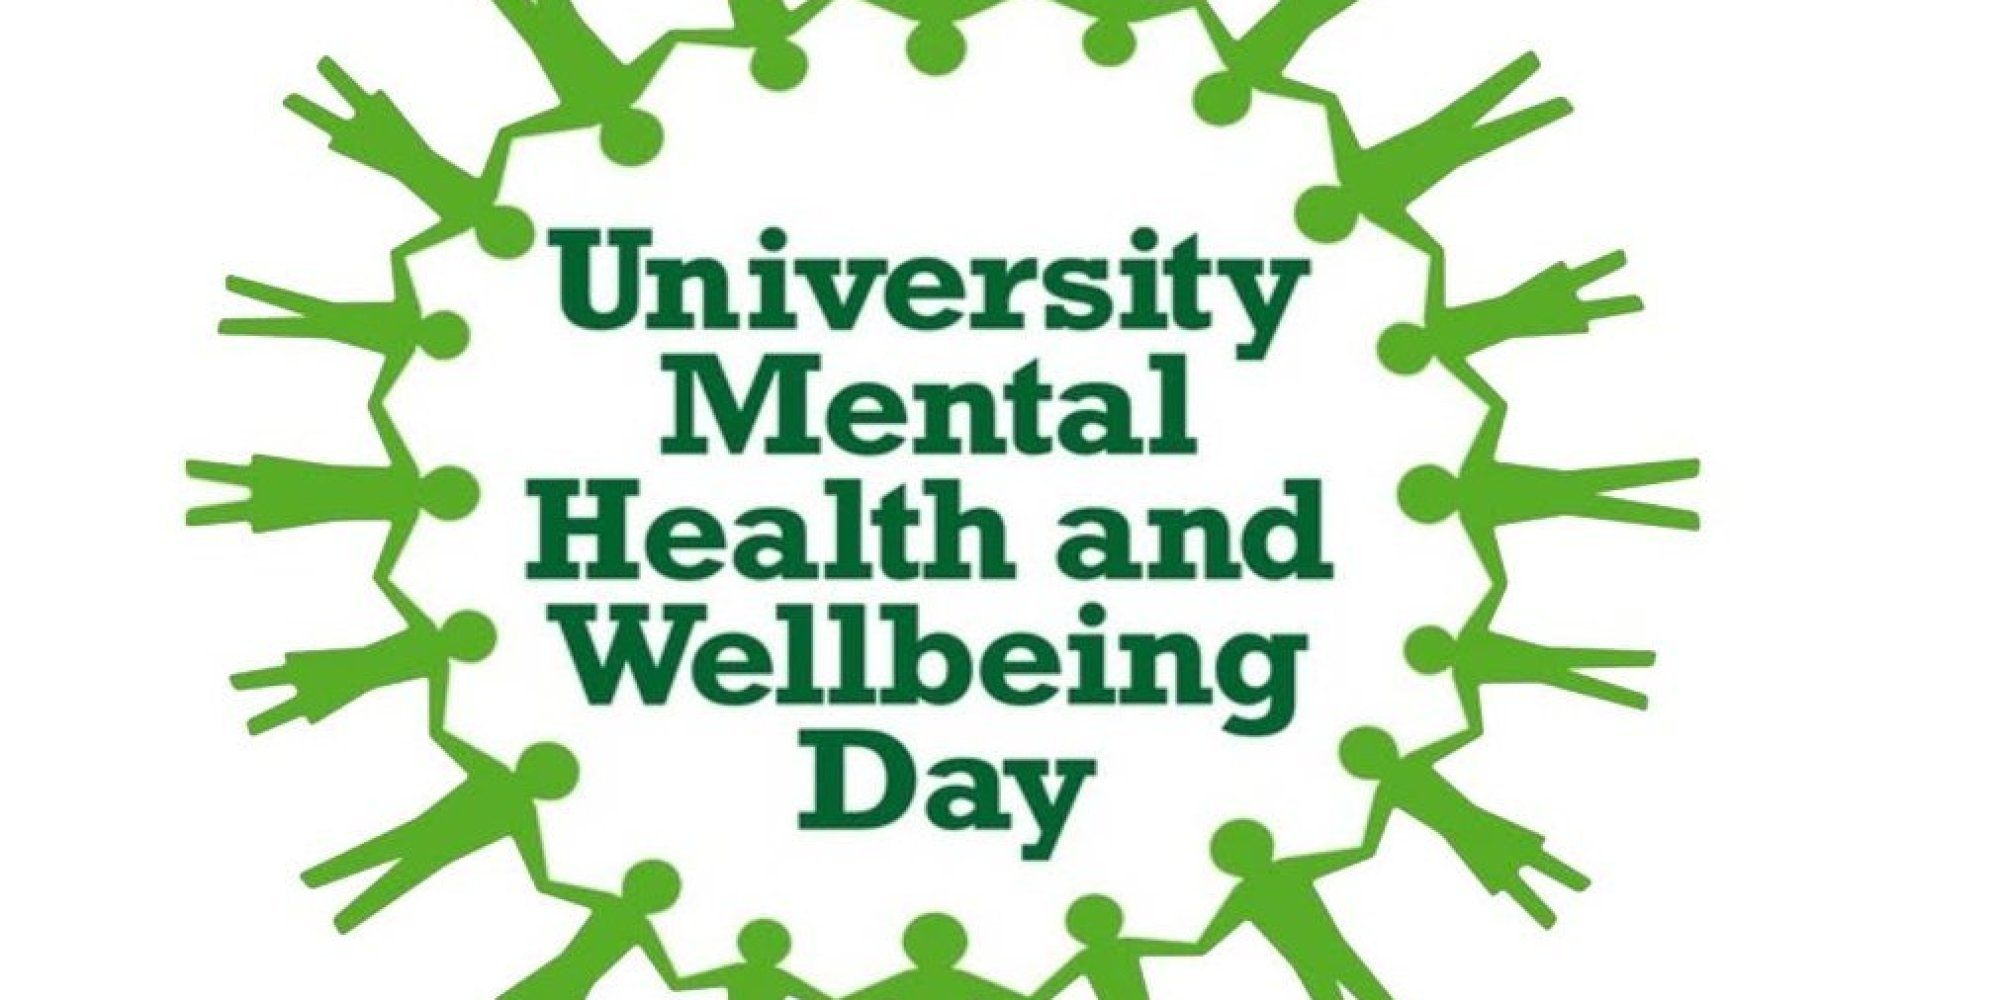 universites unite for much needed mental health day